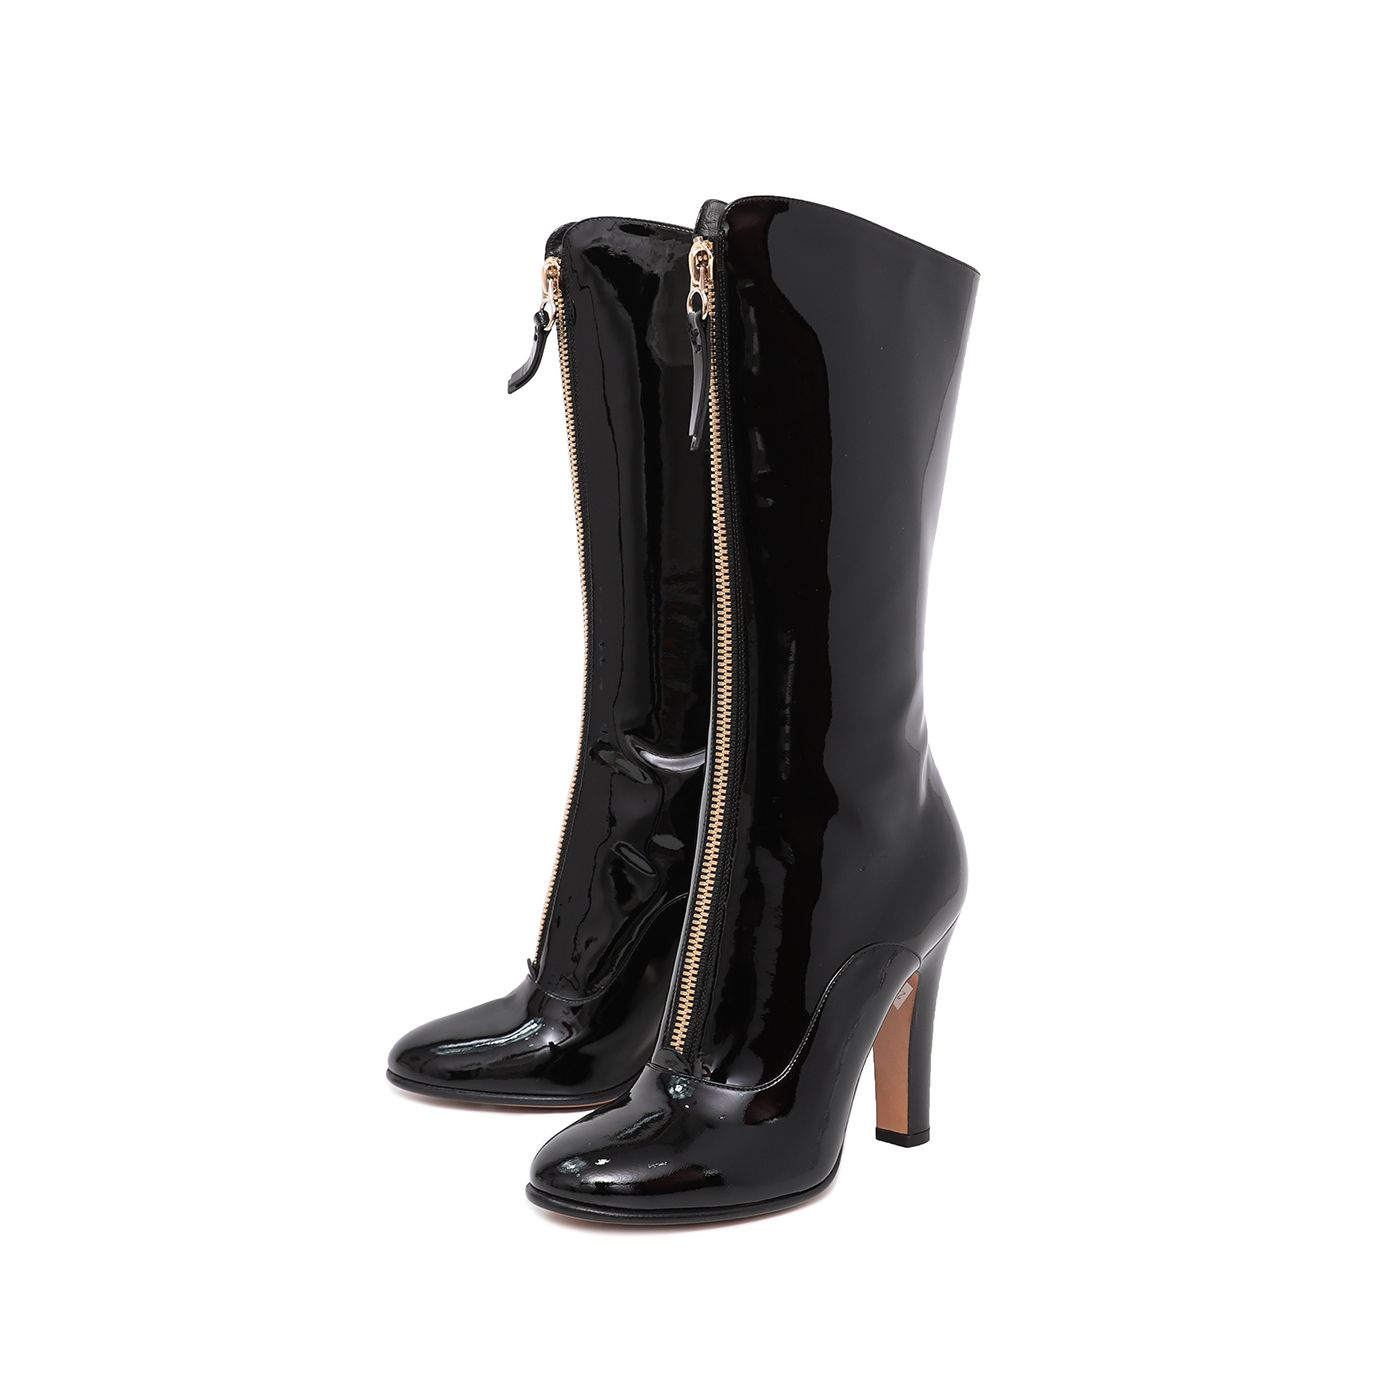 Valentino Black Front Zip Knee High Boots 38